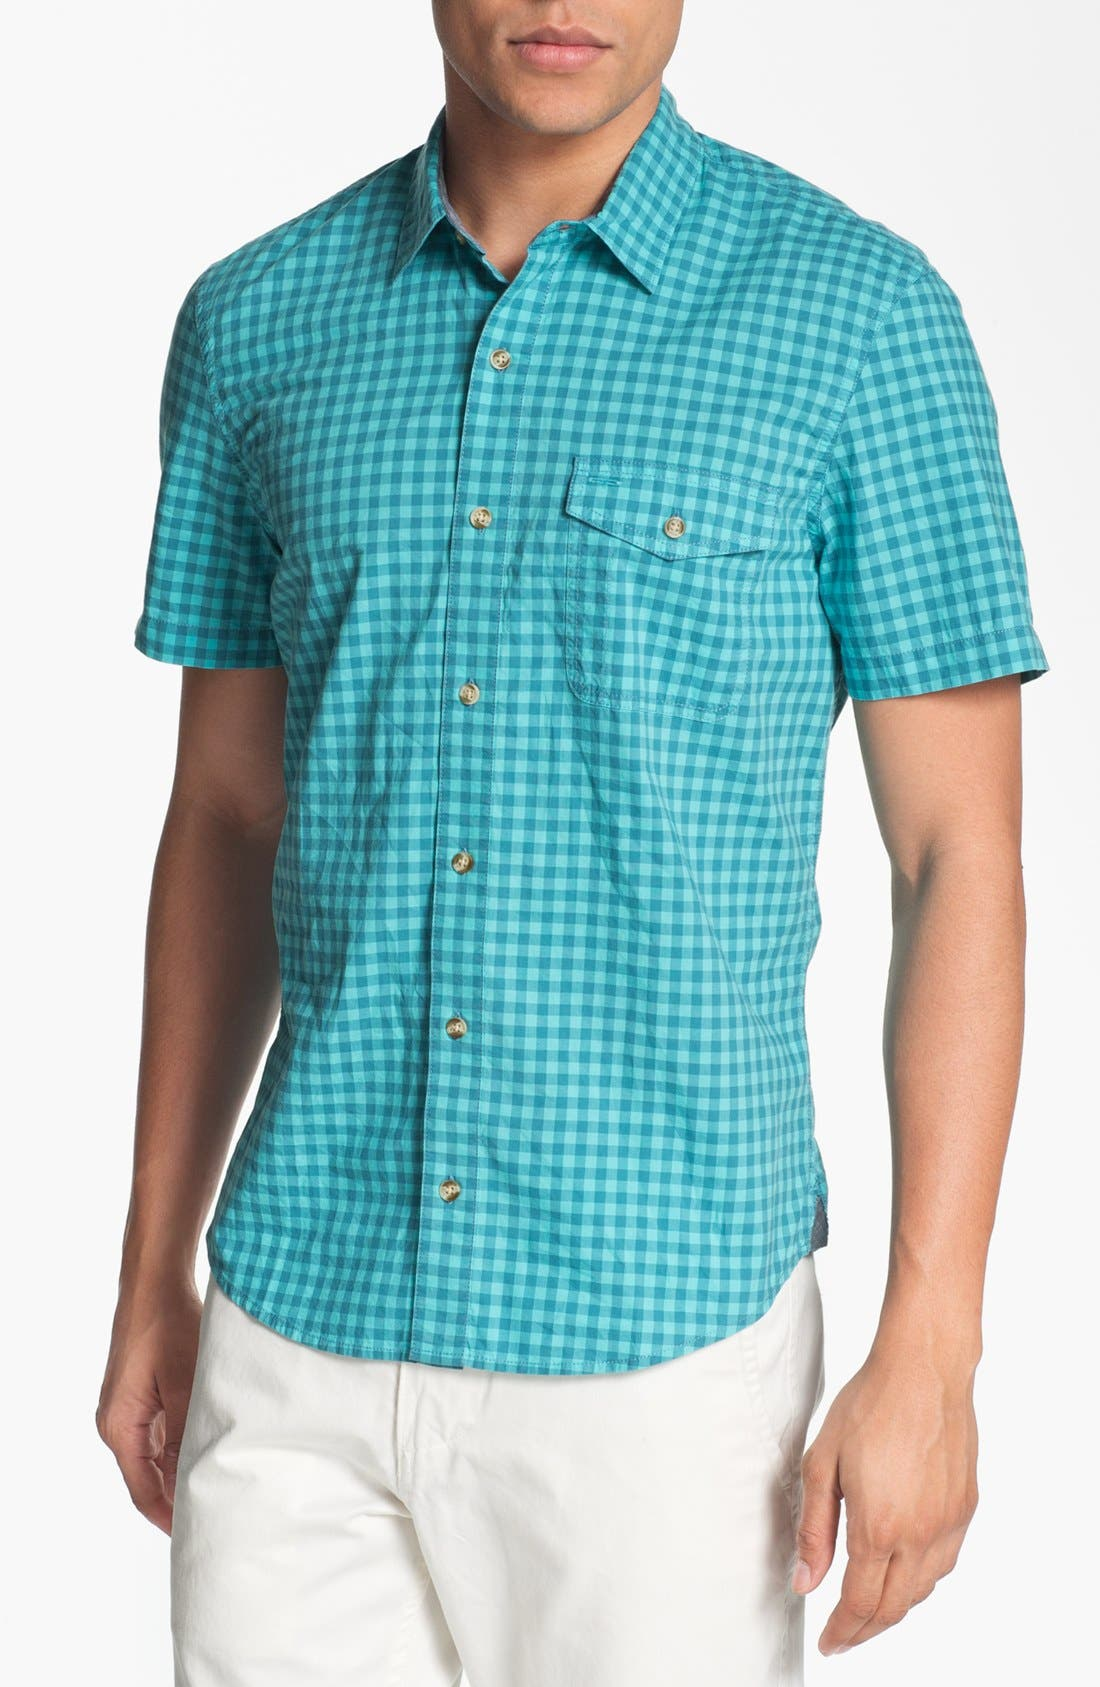 Main Image - 1901 Plaid Short Sleeve Woven Shirt